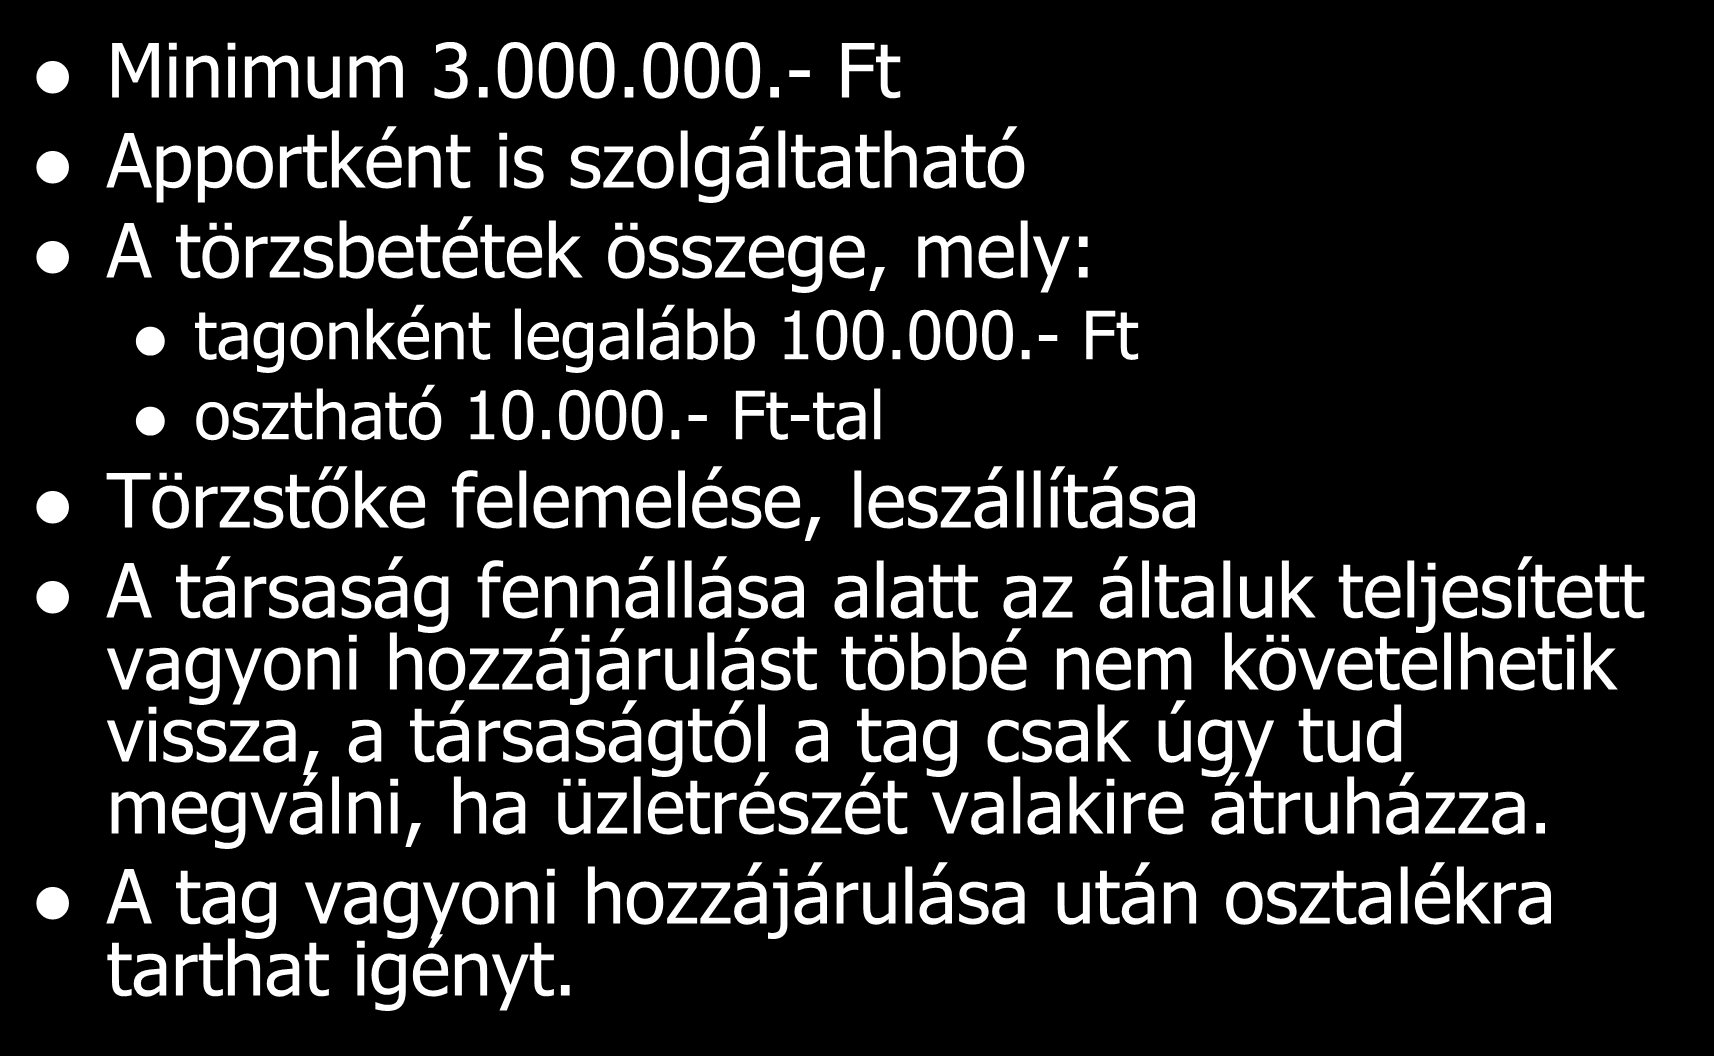 A törzstőke Minimum 3.000.